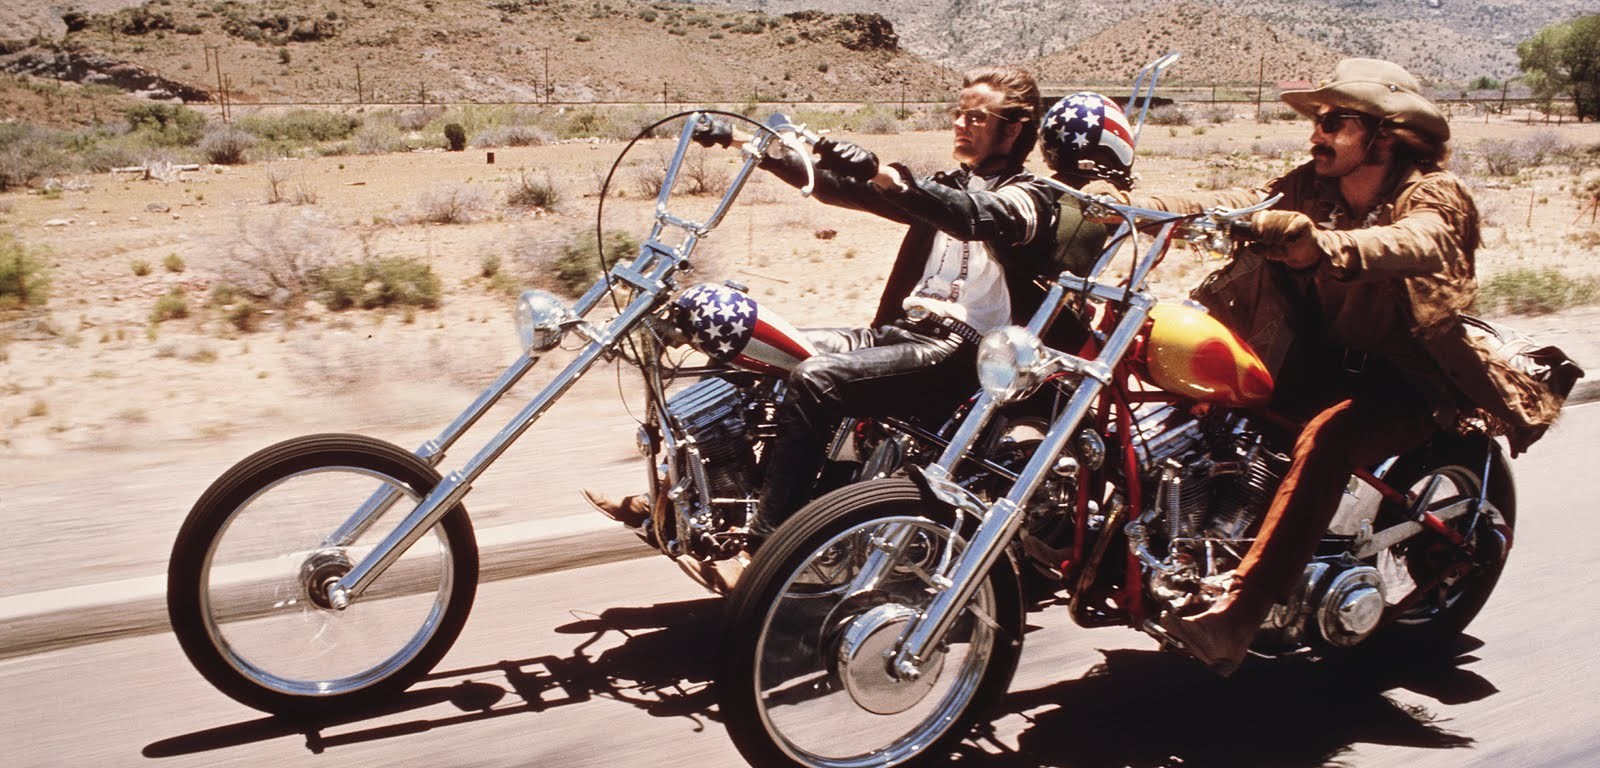 Dennis Hopper and Peter Fonda on motorcycles in Easy Rider movie